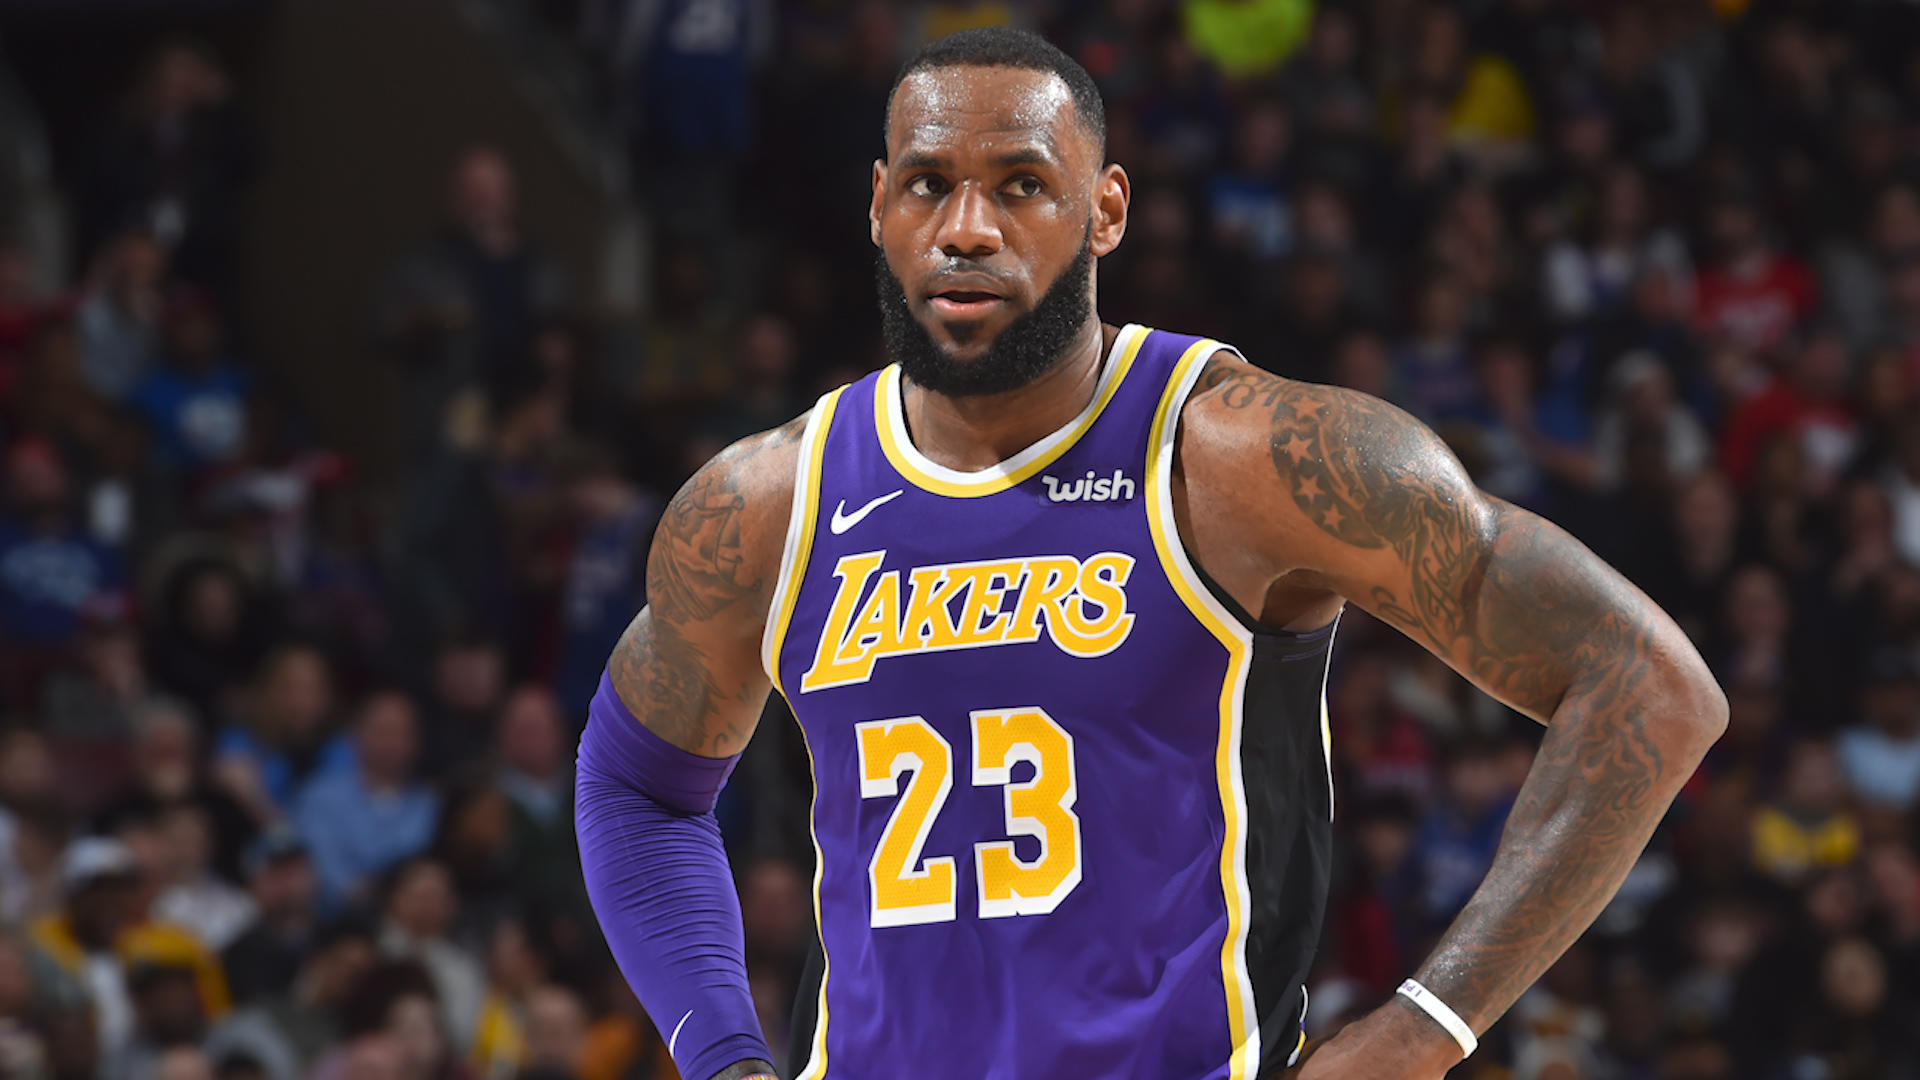 Lakers vs. Rockets odds, line: NBA picks, predictions from proven model on 44-30 roll